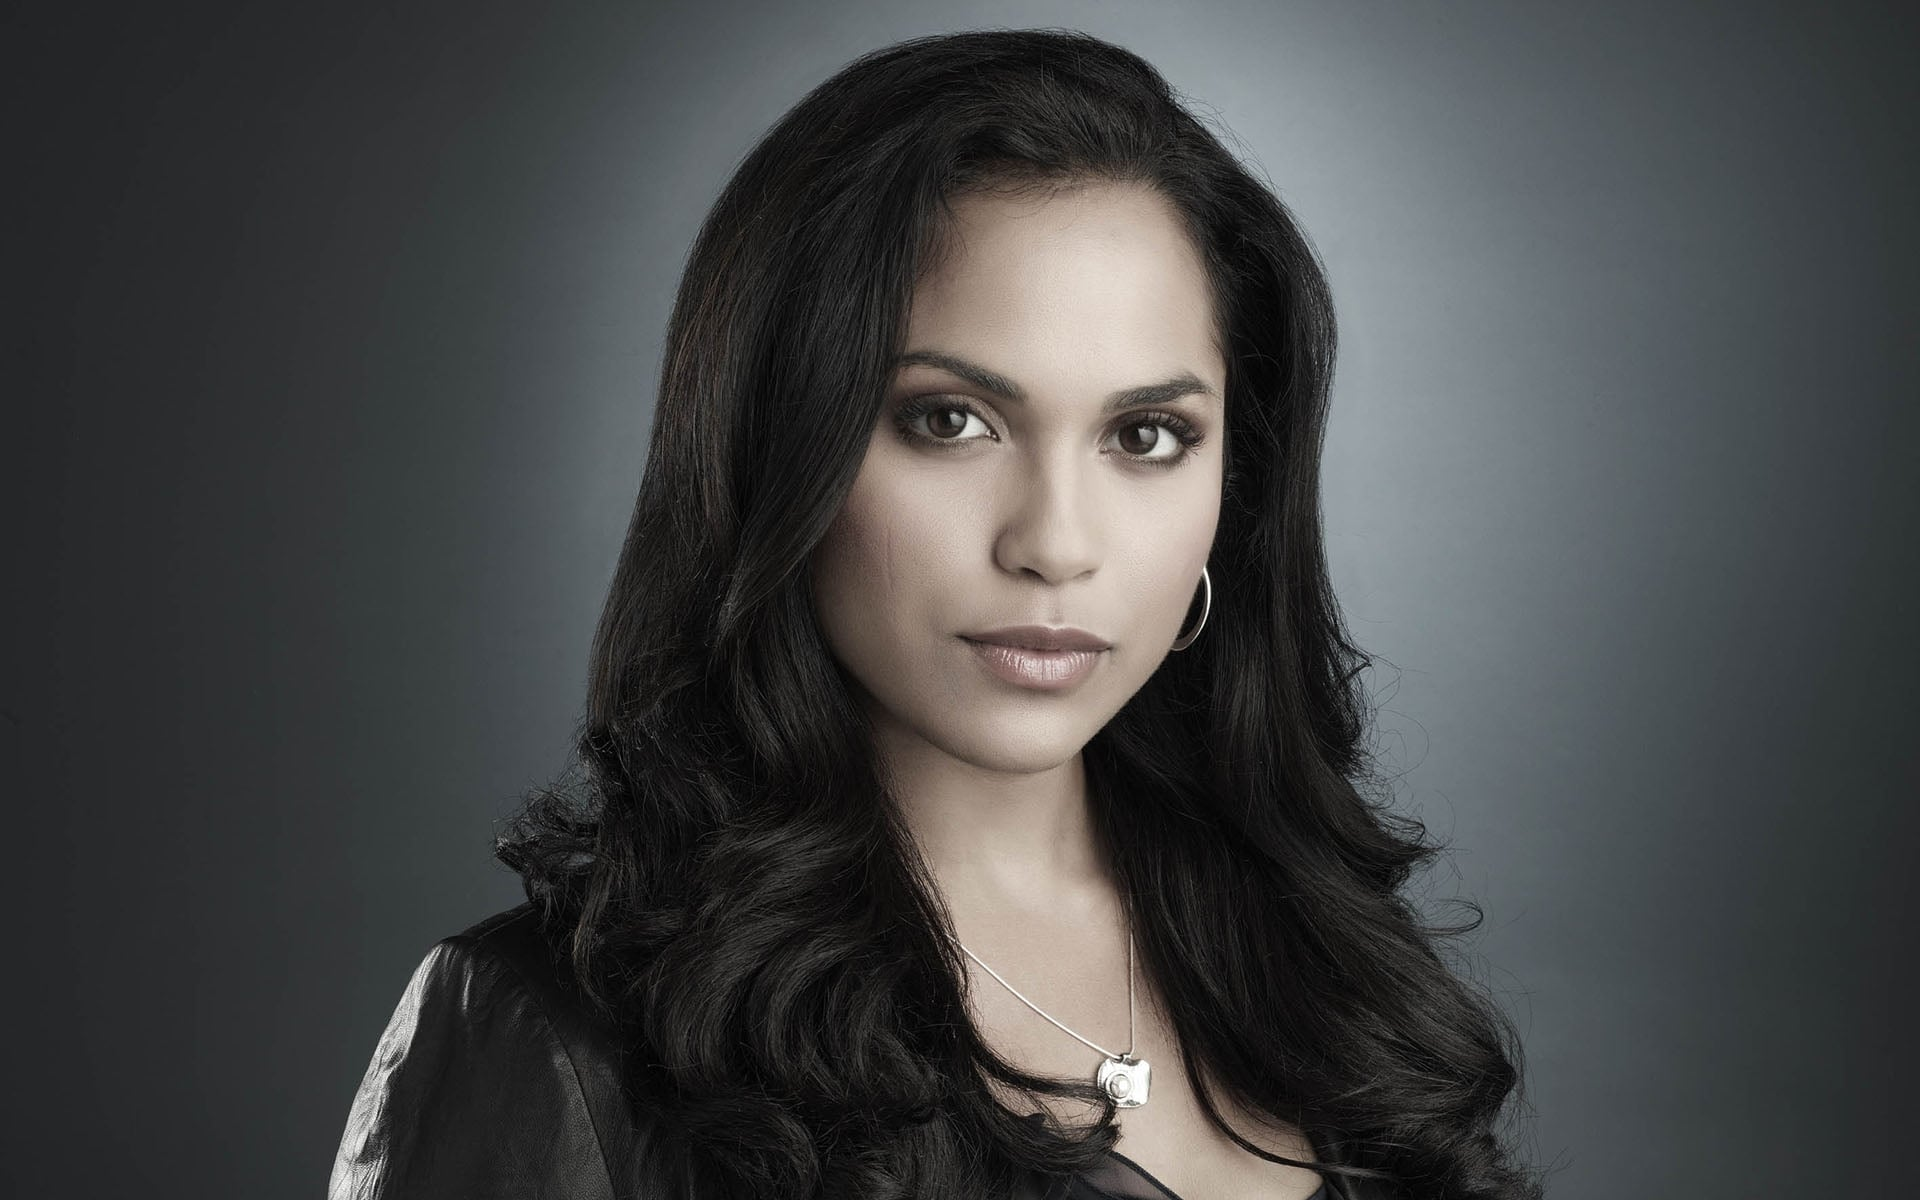 Cars Pc Wallpapers Hd 20 Monica Raymund Wallpapers Hd High Quality Download